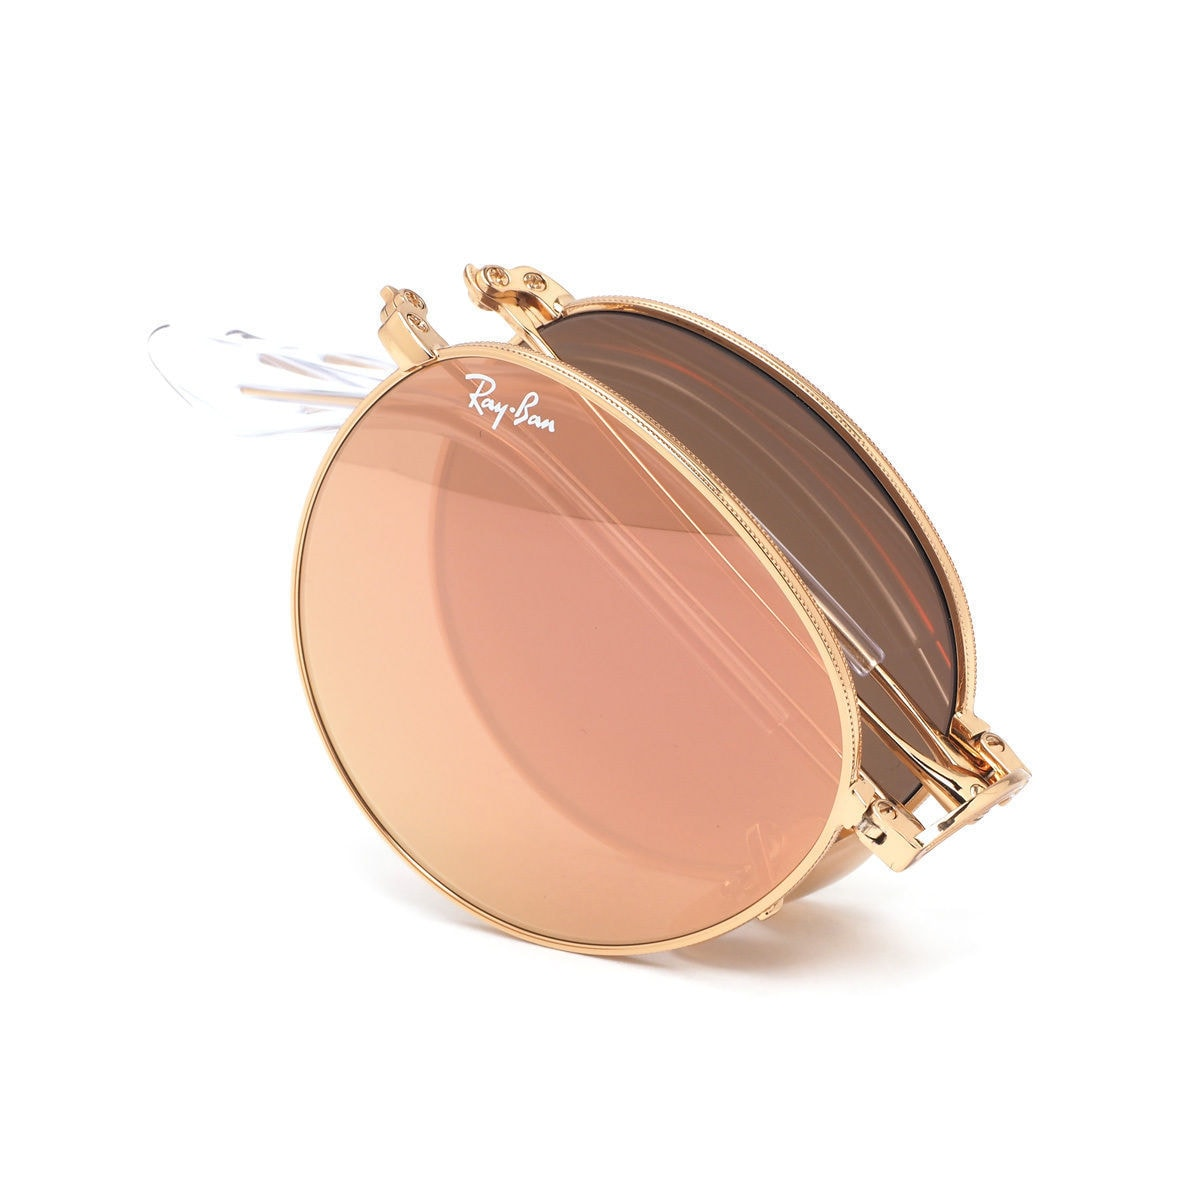 3fe6b39f5db Shop Ray-Ban RB3532 001 Z2 Round Metal Folding Gold Frame Copper Flash 50mm  Lens Sunglasses - Free Shipping Today - Overstock - 14328680